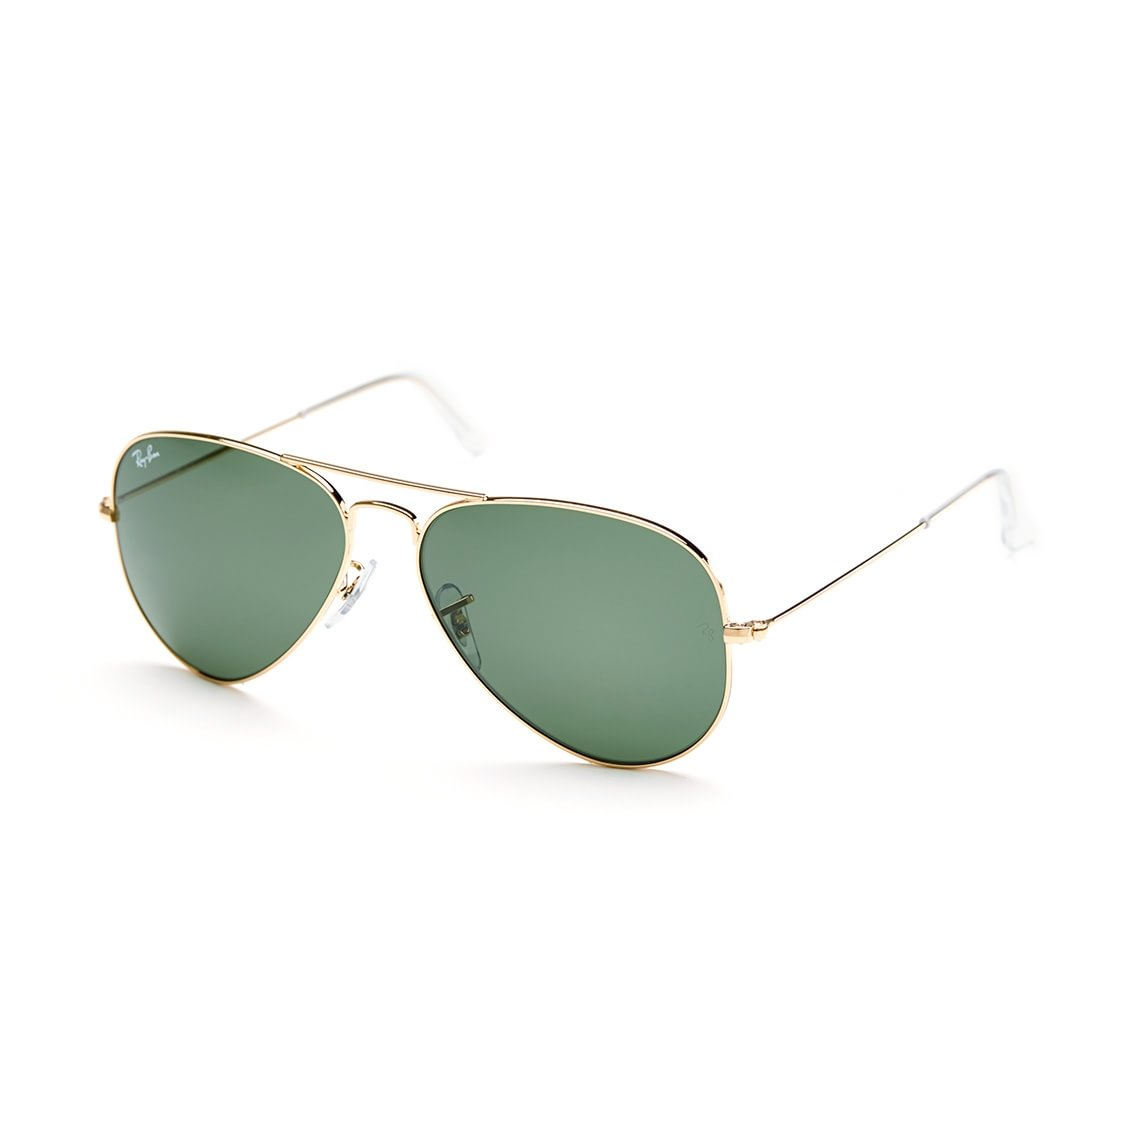 6b681d588f Ray-Ban Aviator RB3025 L0205 58 - Synsam